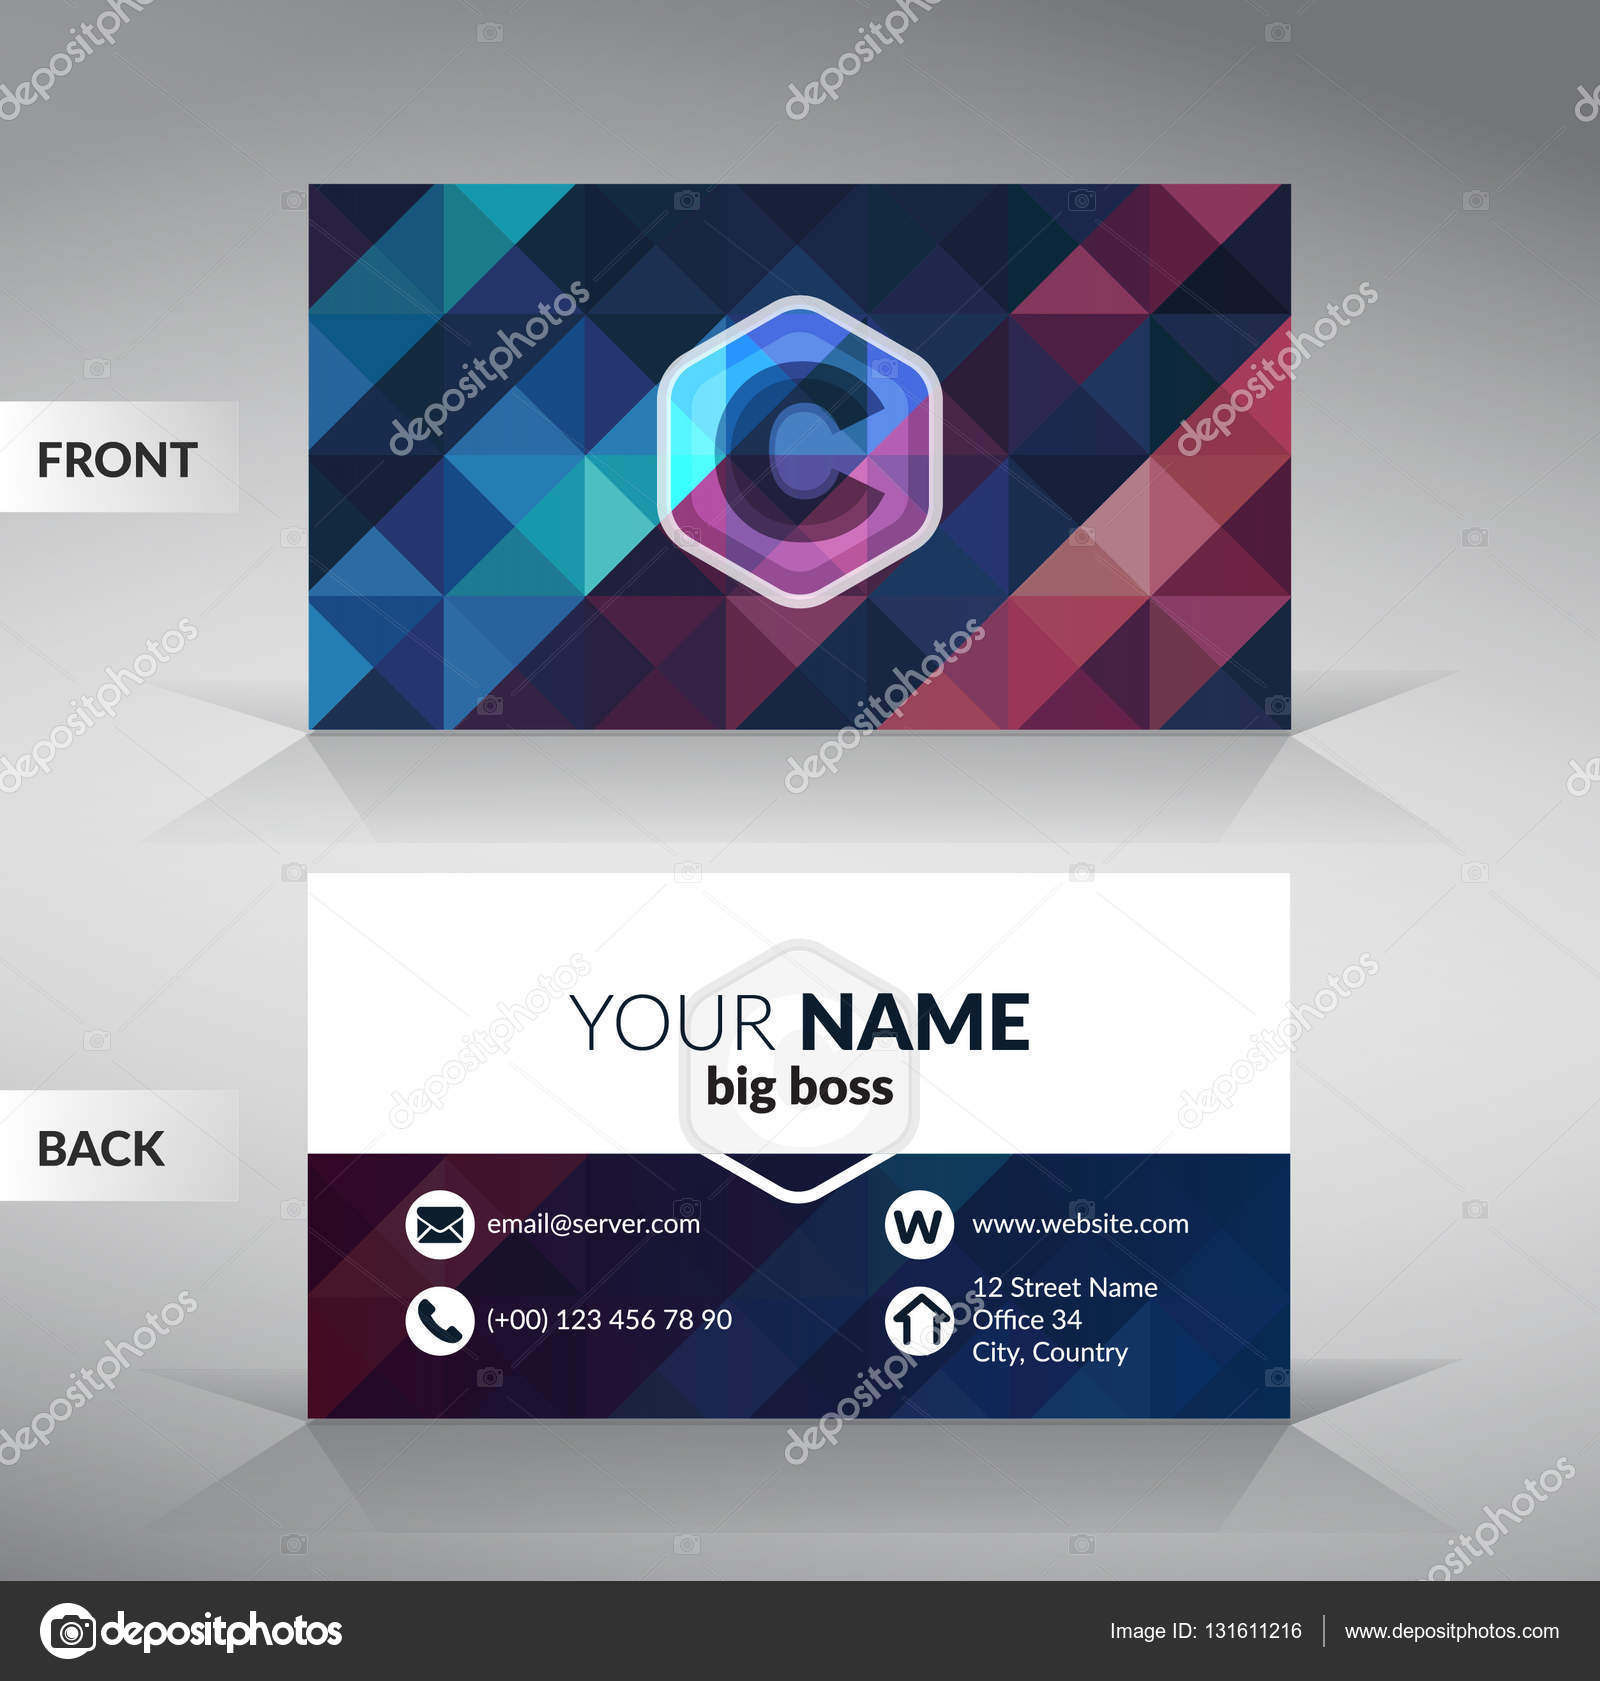 Colorful stylish business card template with modern triangular ...